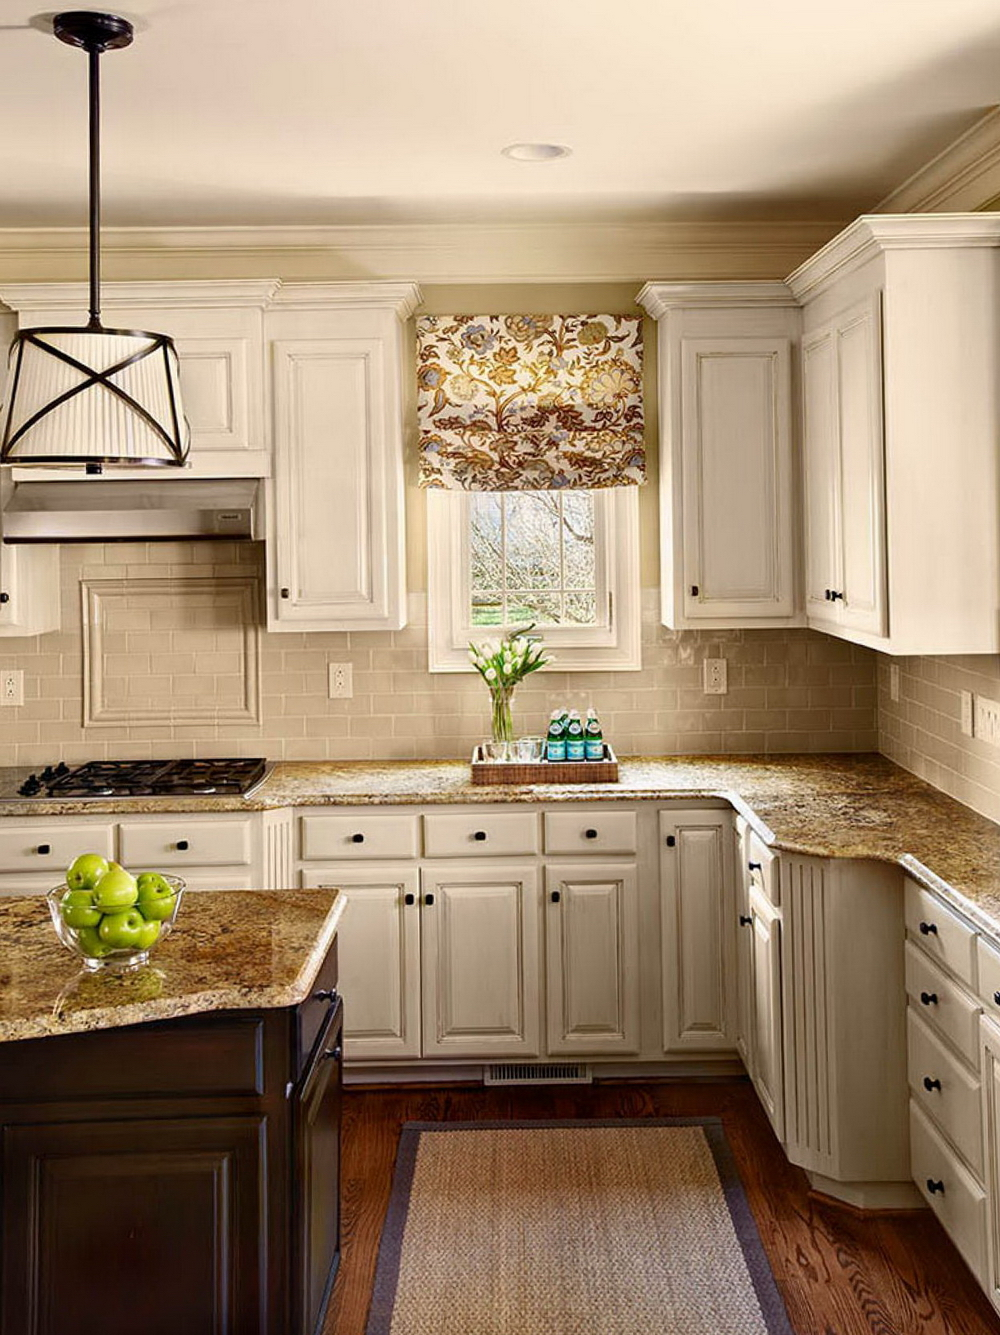 Good Kitchen Cabinets For The Money